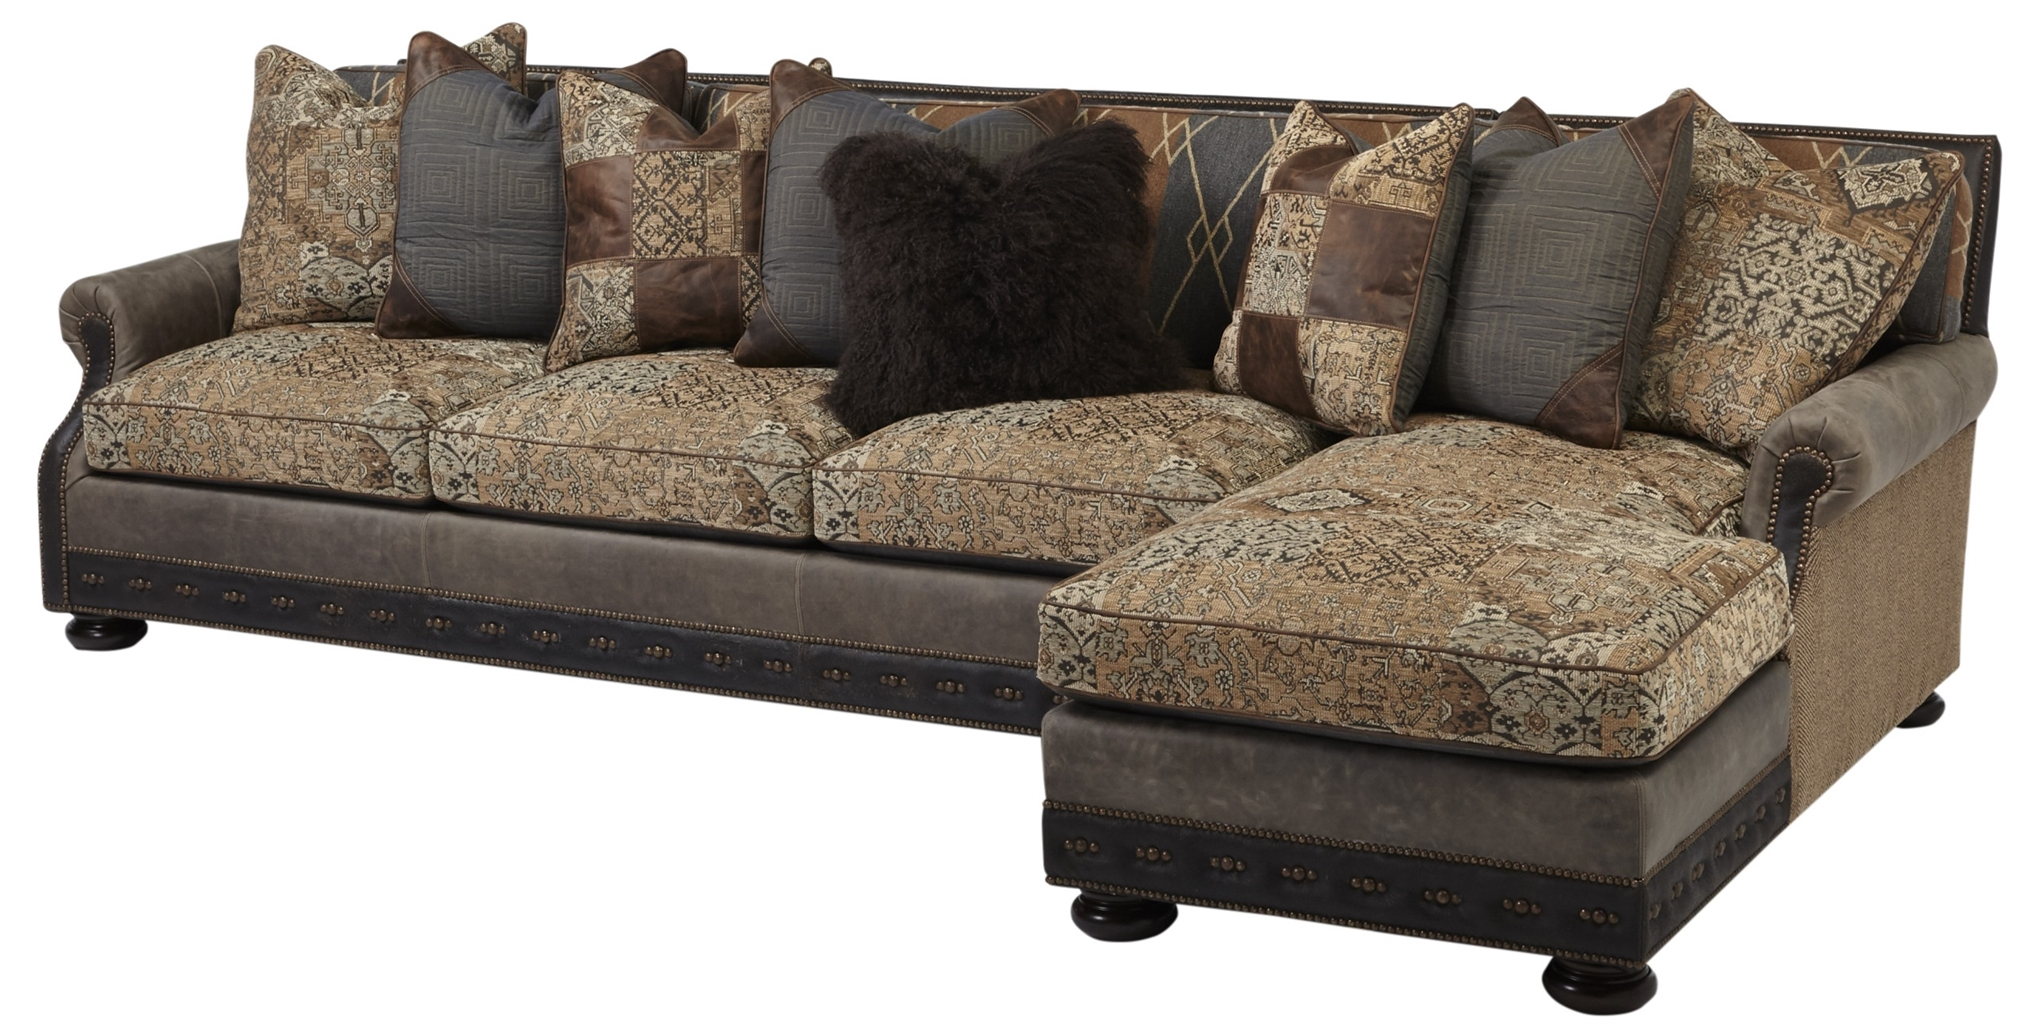 Cool sofa with chaise lounge high end furnishings 556 for Chaise longe sofa